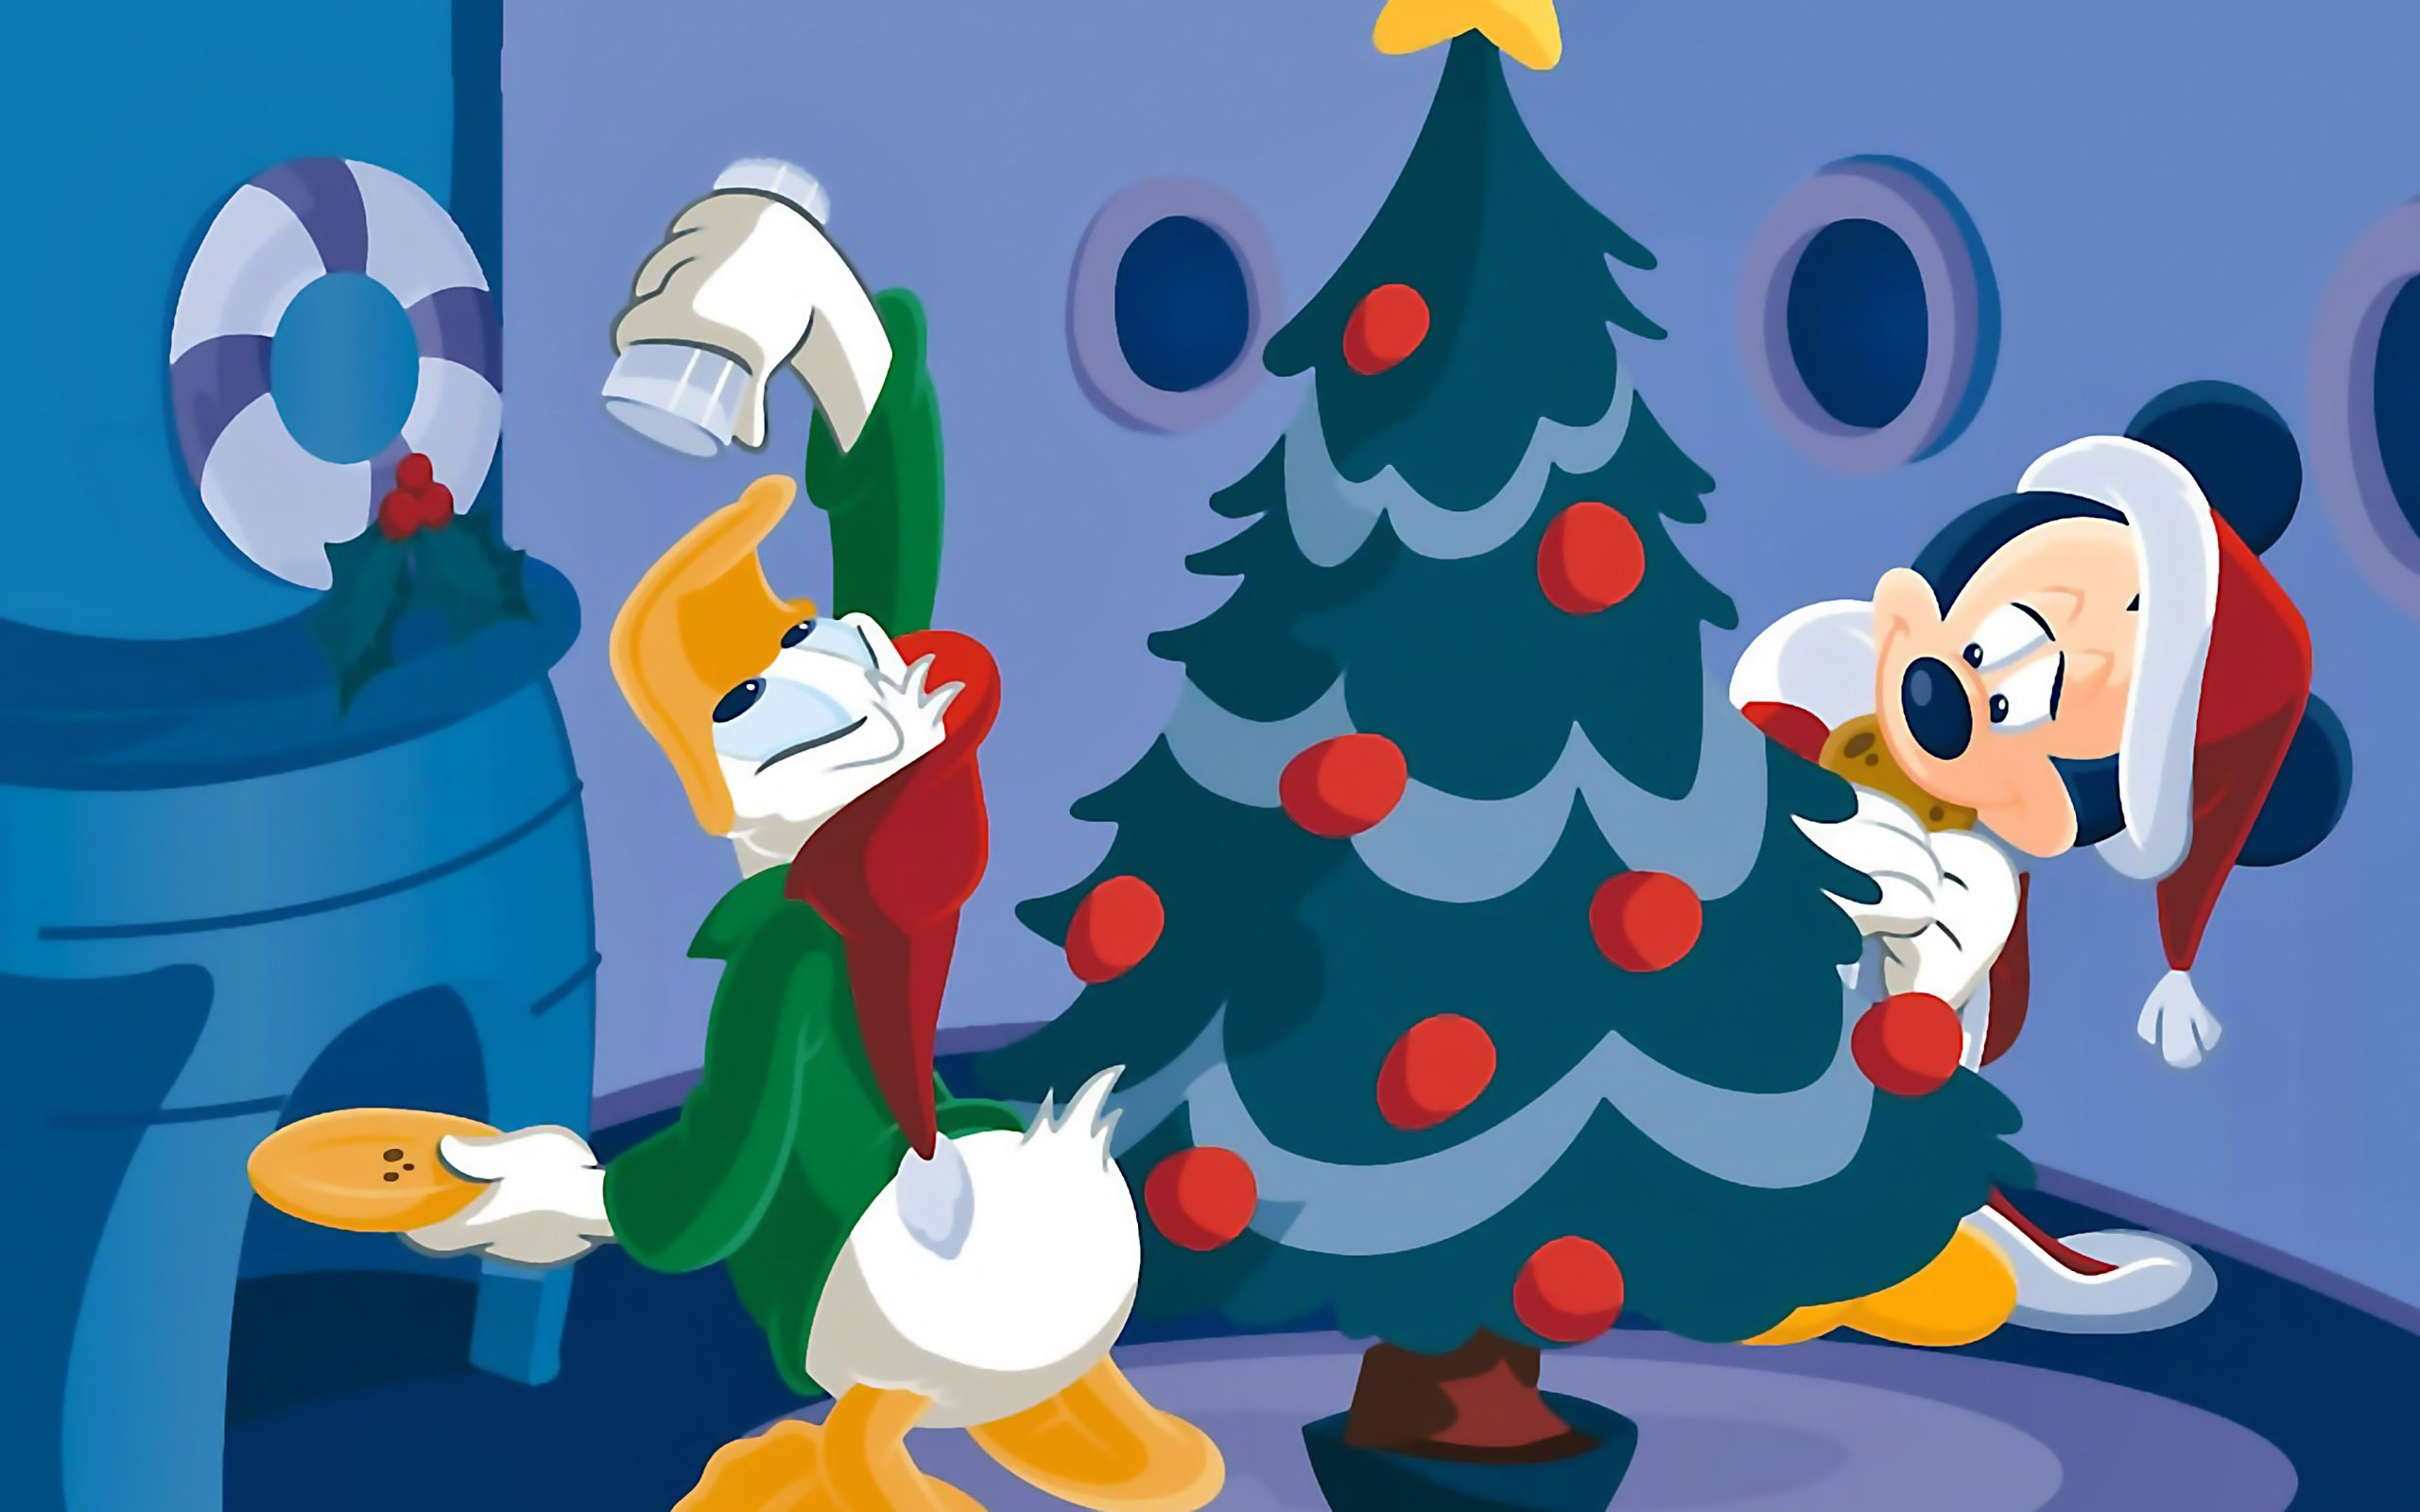 Res: 2560x1600, Disney Characters Decorating a Tree Christmas Wallpaper